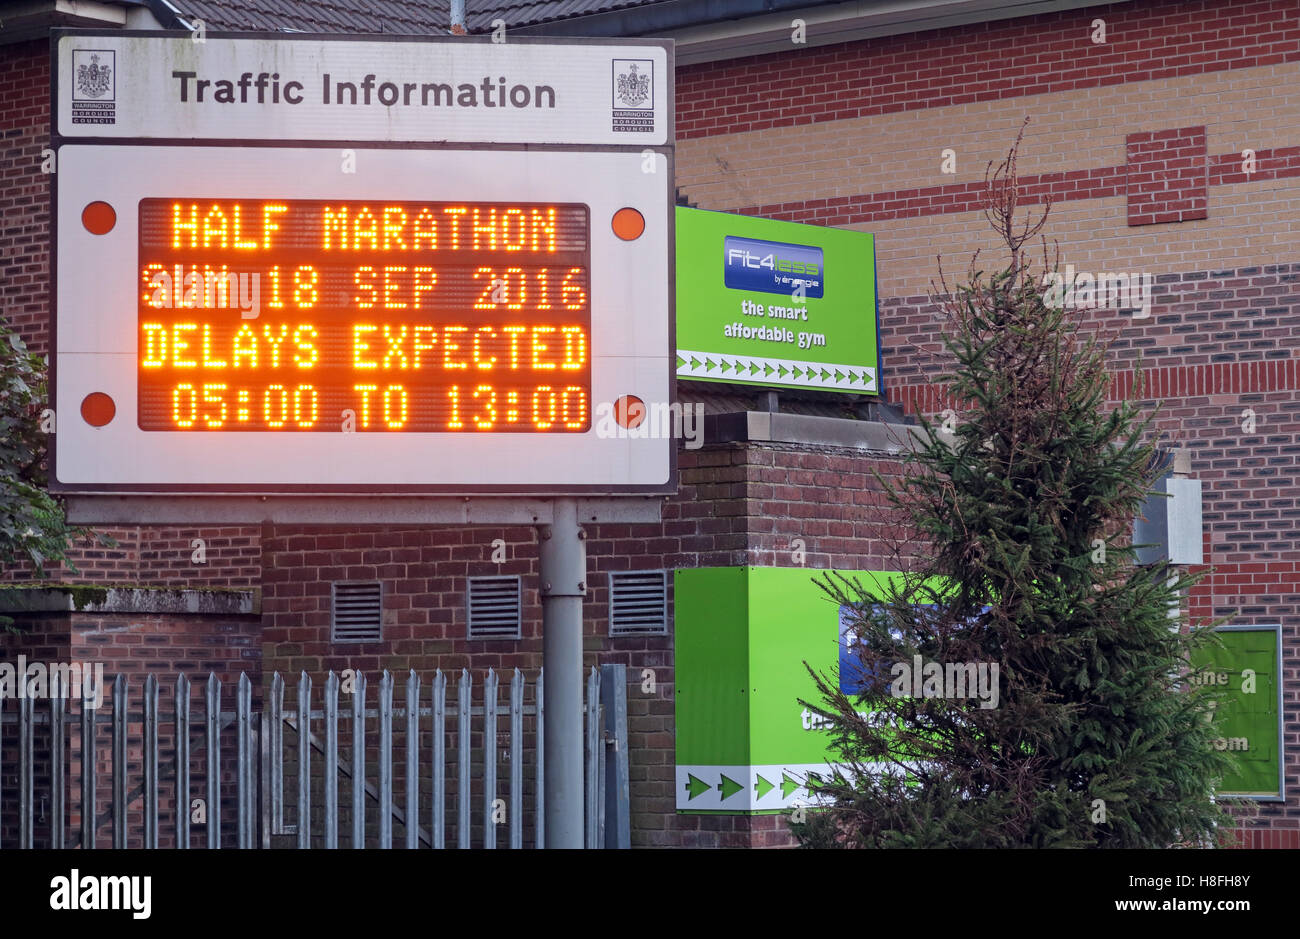 Traffic Information display in Latchford, Warrington. Half Marathon in town - Stock Image